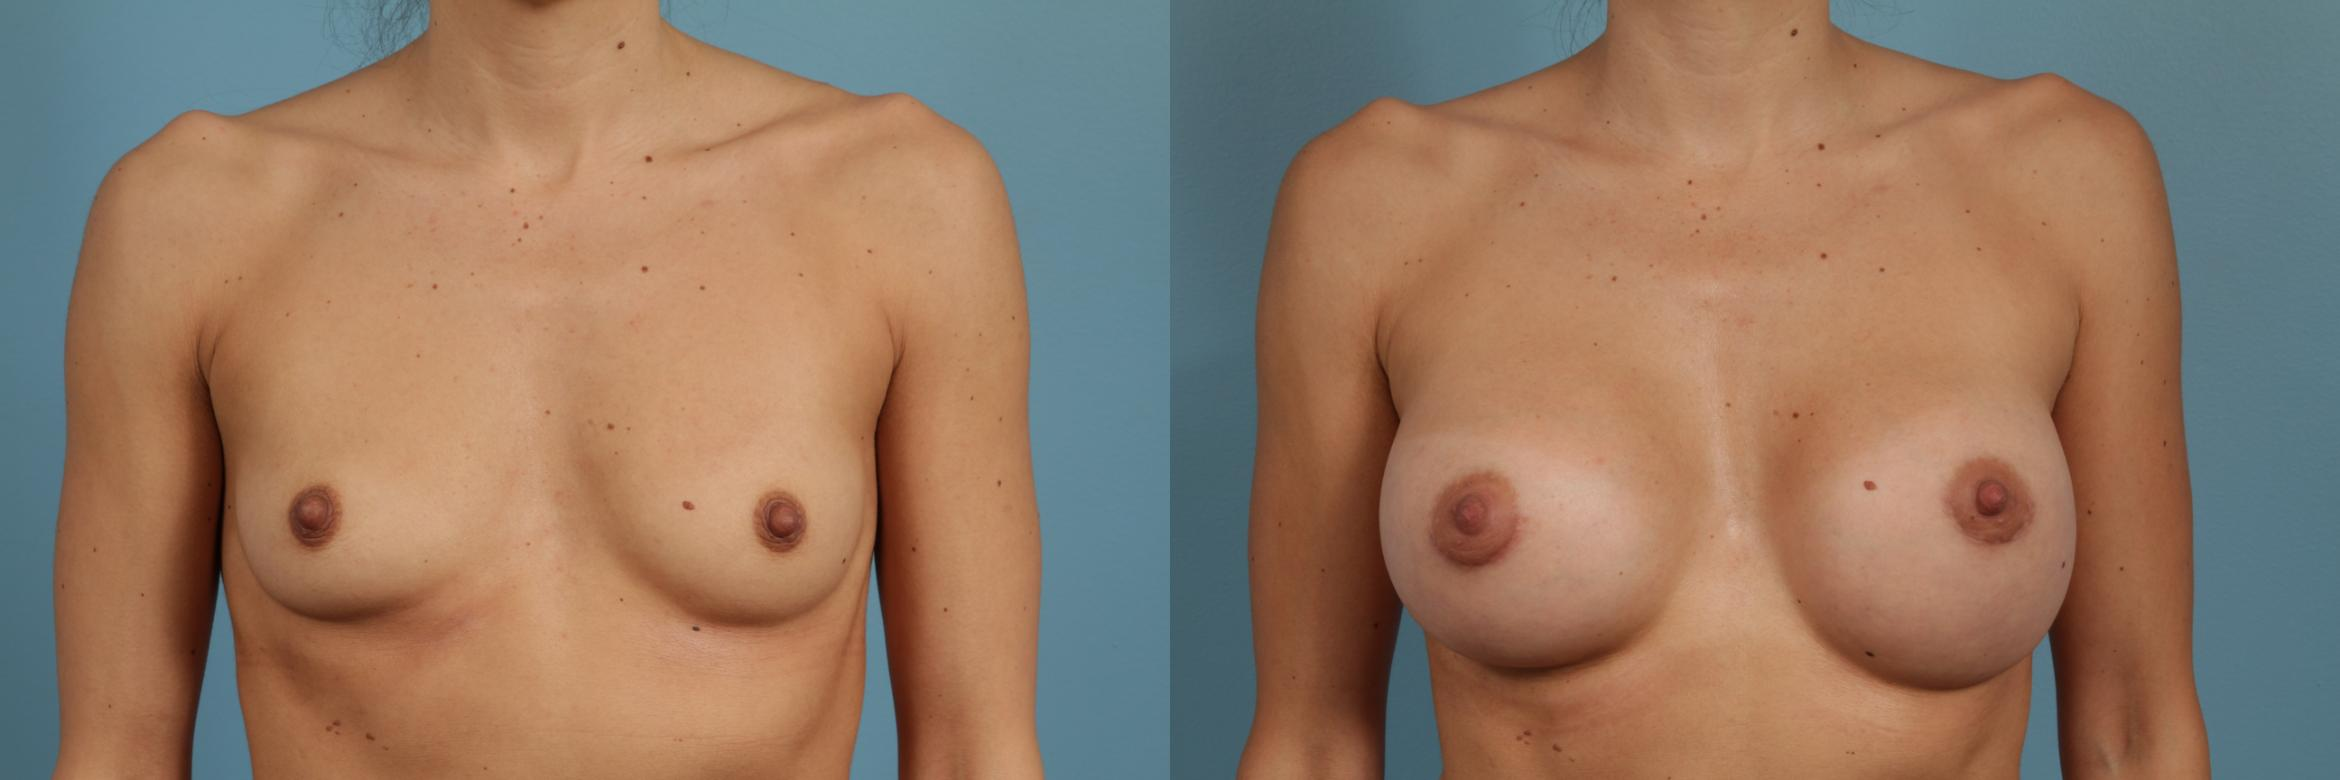 Breast Augmentation Case 301 Before & After View #1 | Chicago, IL | TLKM Plastic Surgery